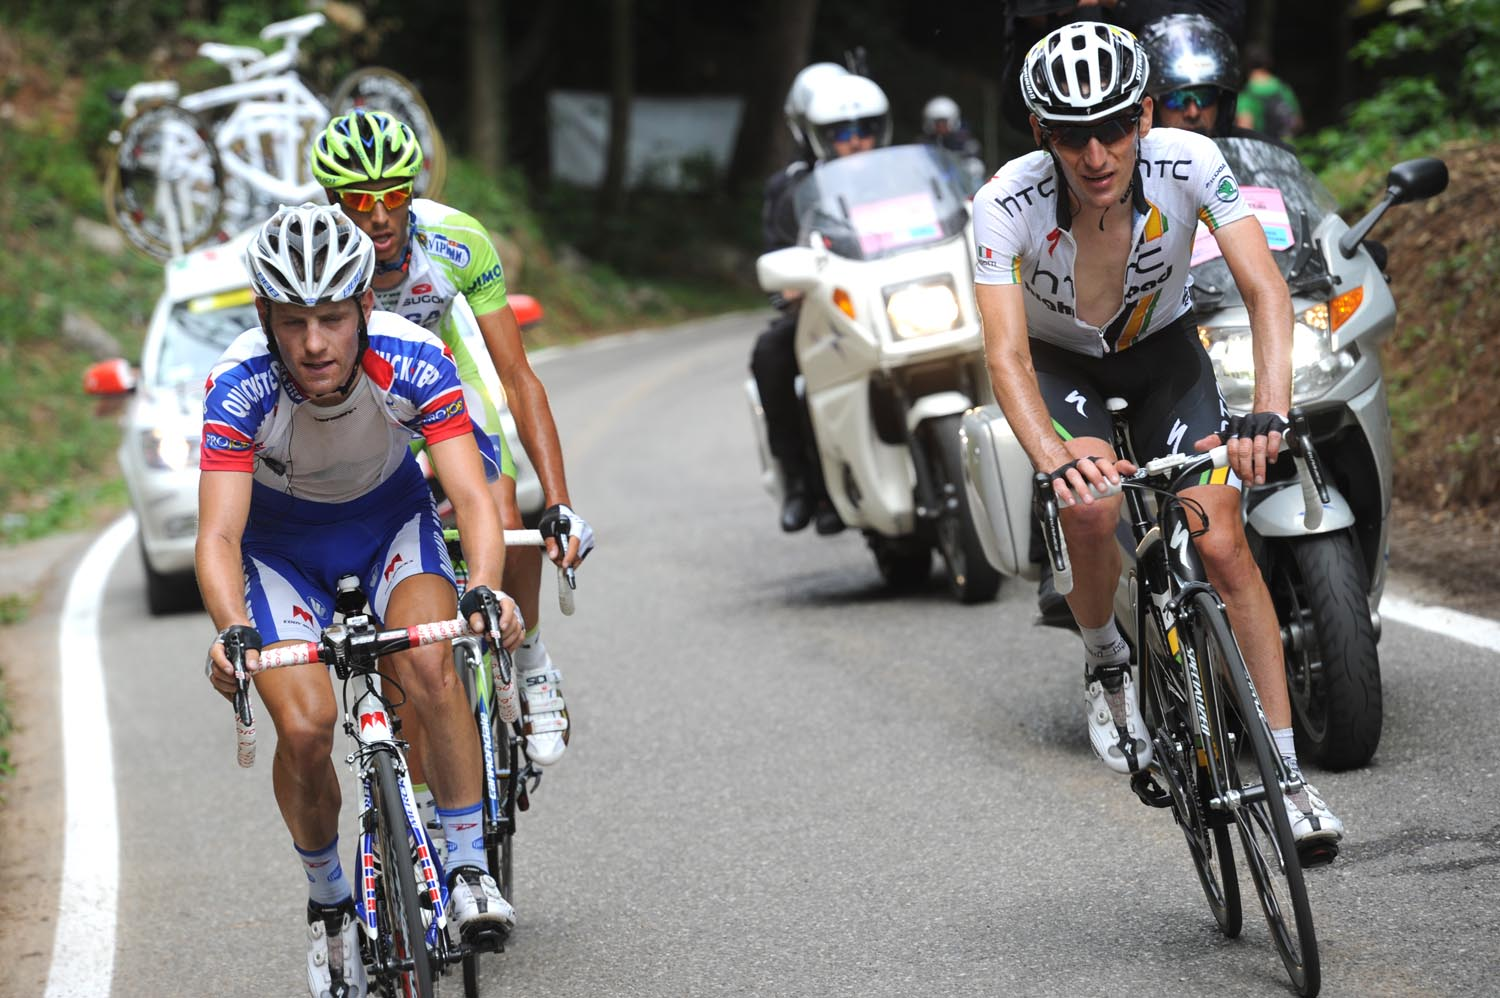 Kevin Seeldraeyers and Marco Pinotti in escape, Giro d